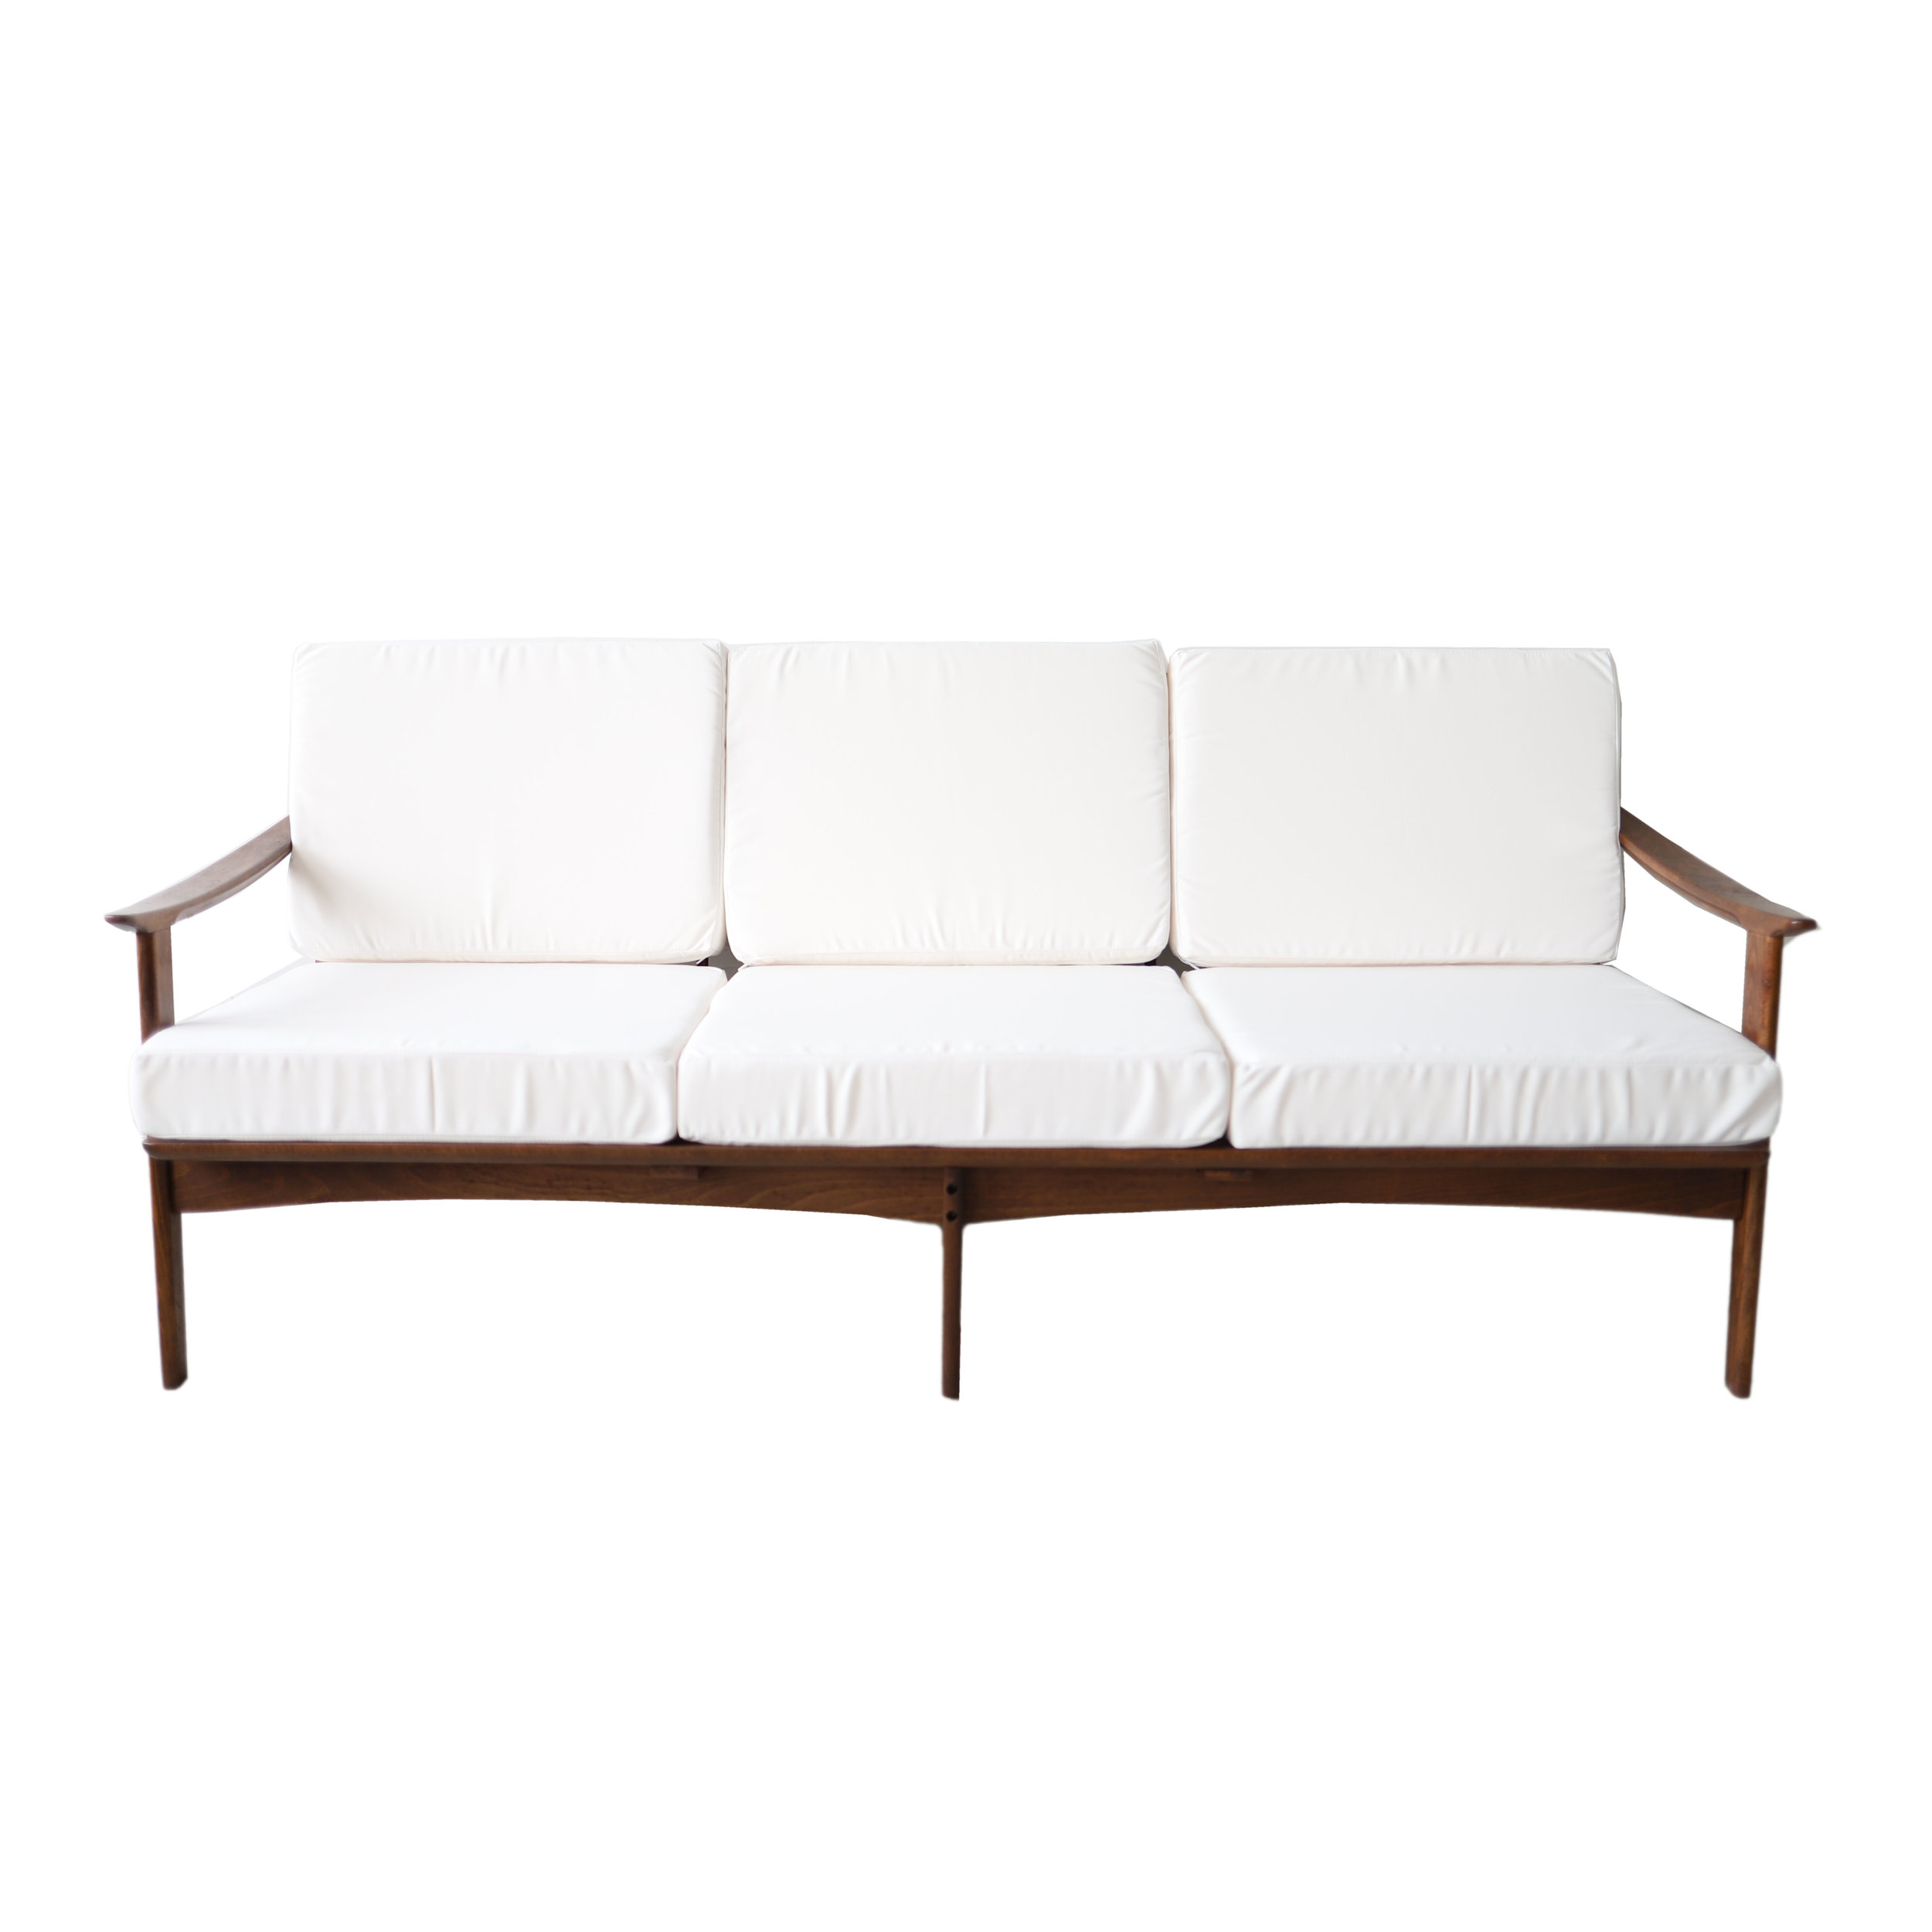 At 1st Sight - New Products - Vintage Mid Century Modern White Daybed Sofa